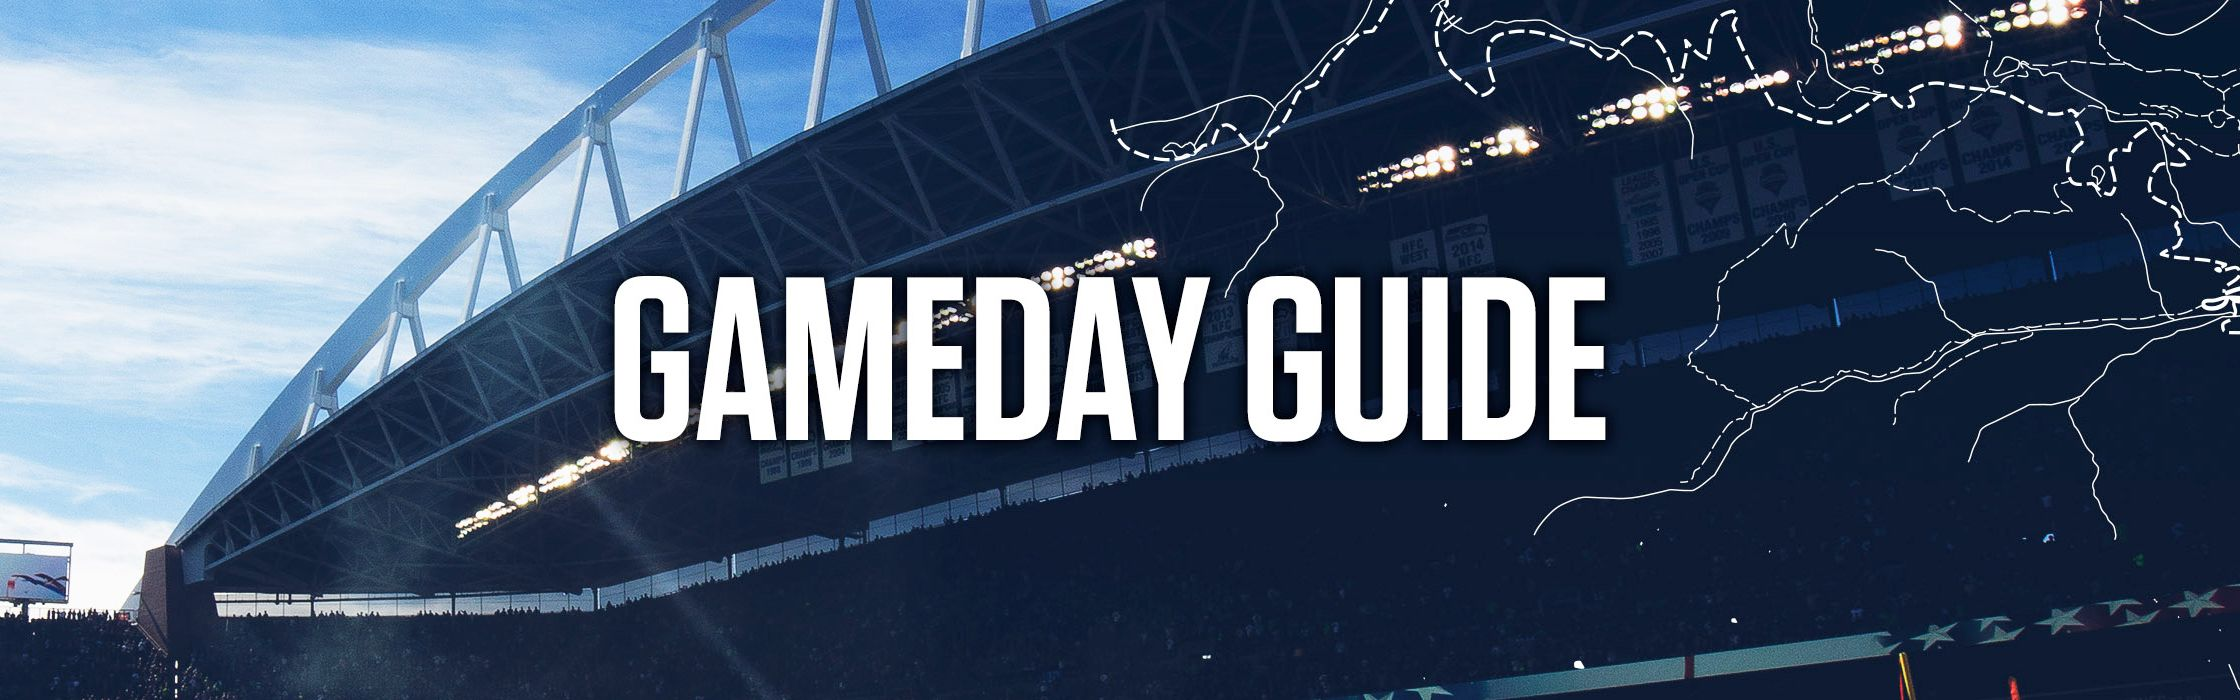 View this week's Gameday Guide